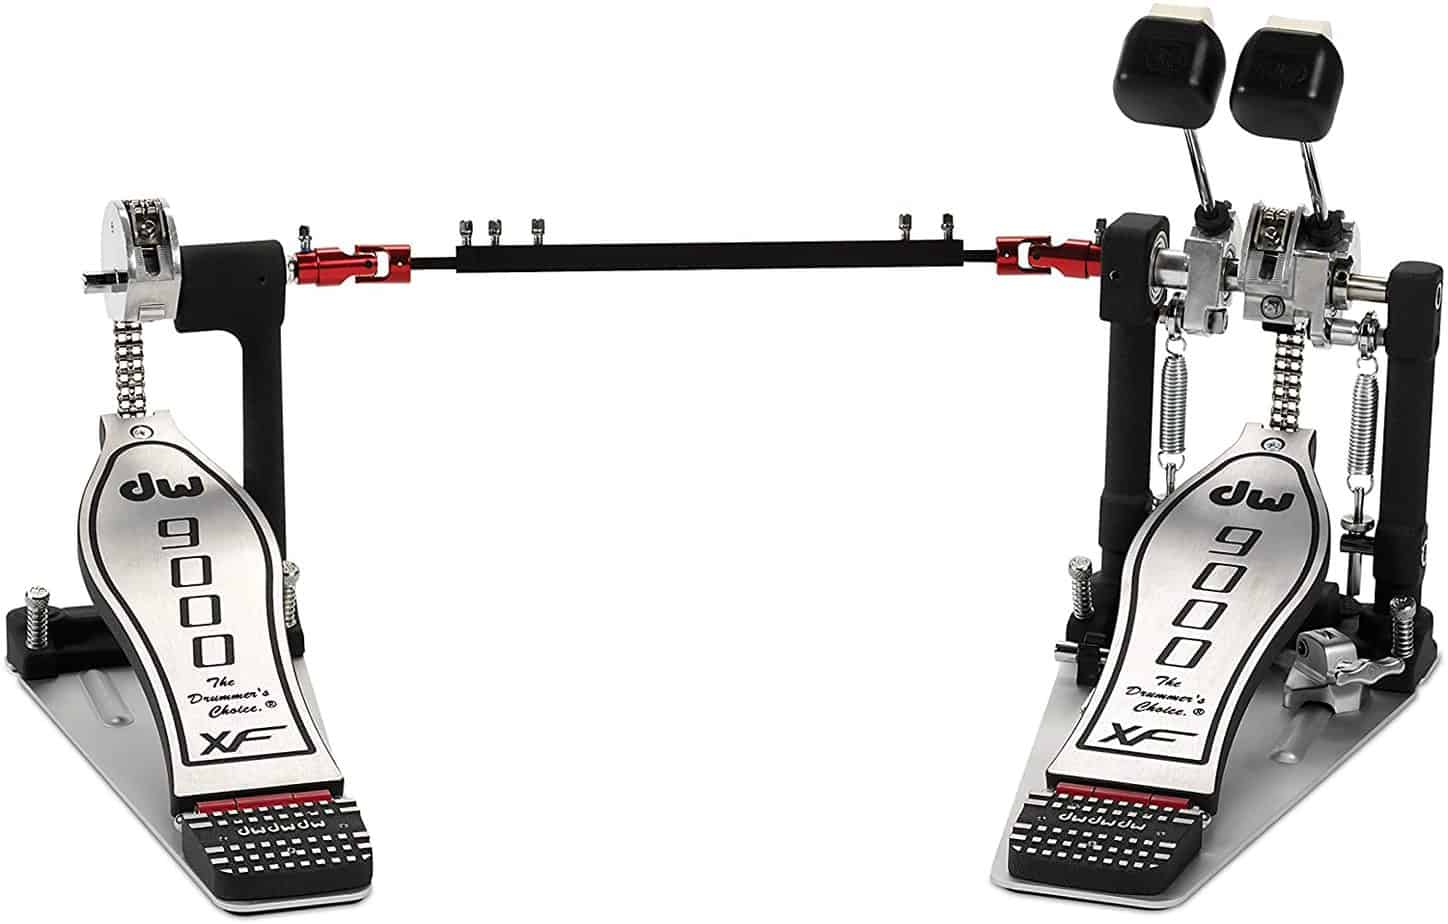 DW 900 Double pedal extended footboard – Best double bass pedals for beginners